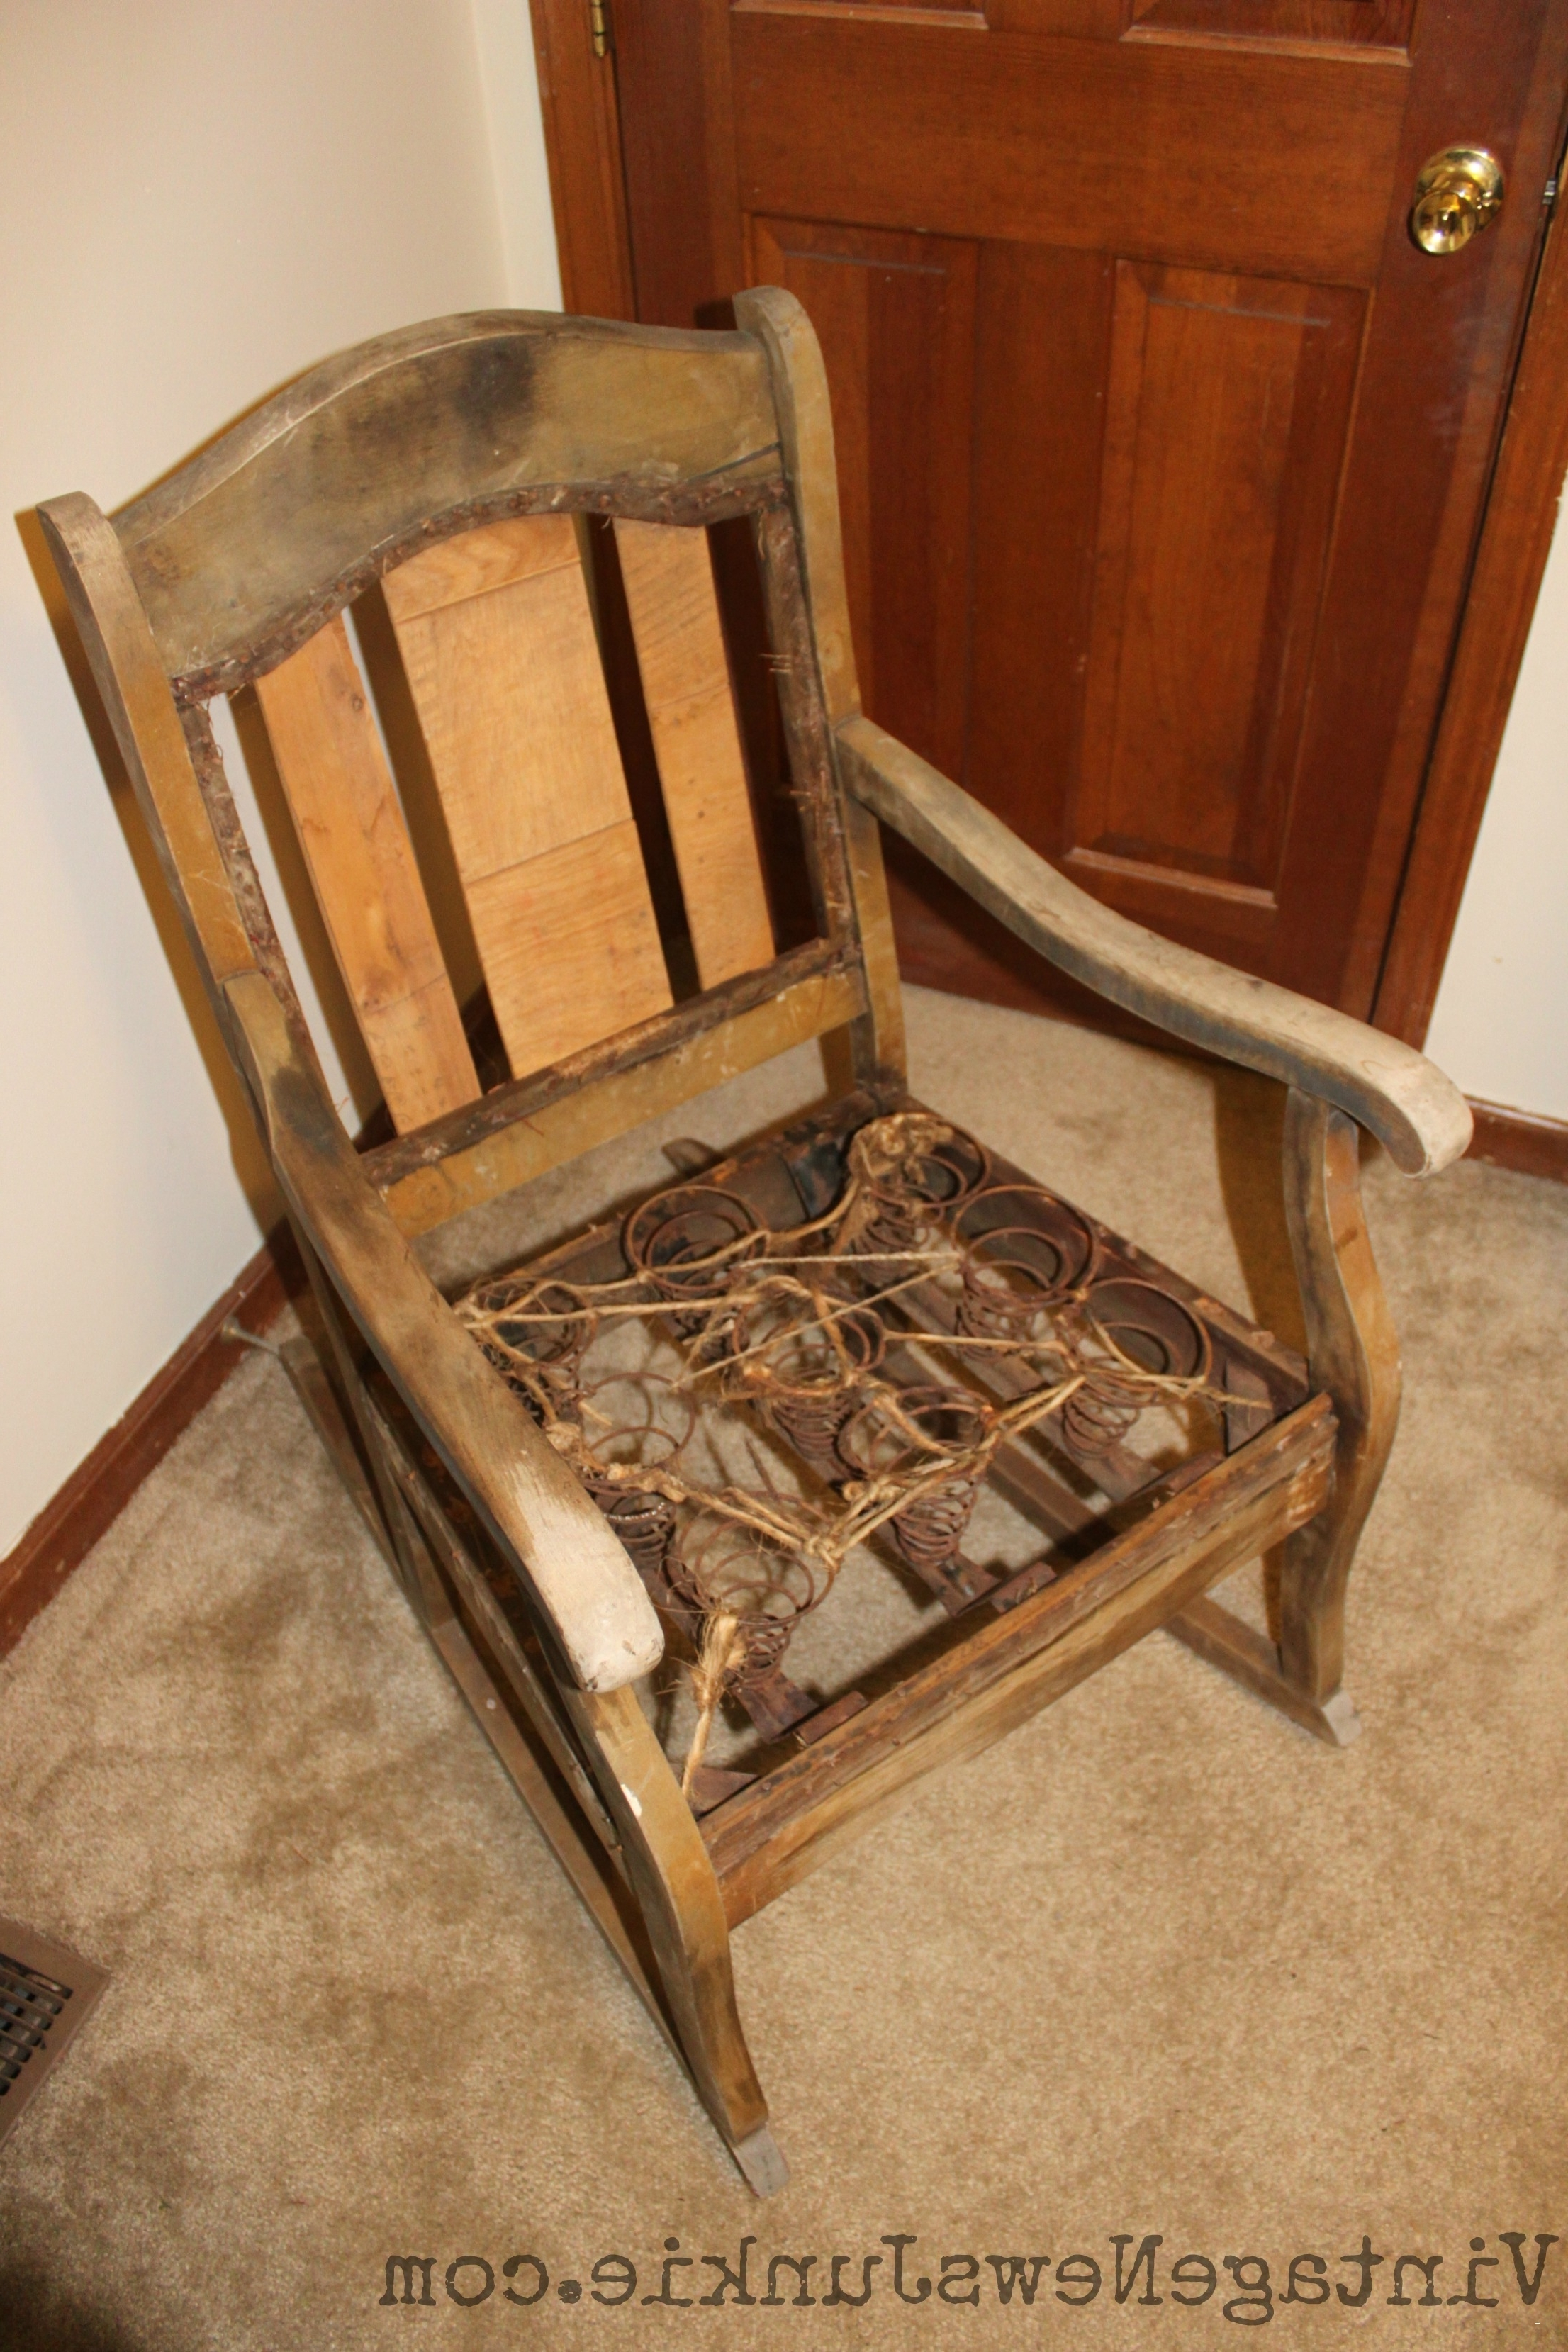 Rocking Chairs With Springs Intended For Widely Used Upholstered Rocking Chairs New Reupholster Chair Seat With Springs (View 8 of 15)